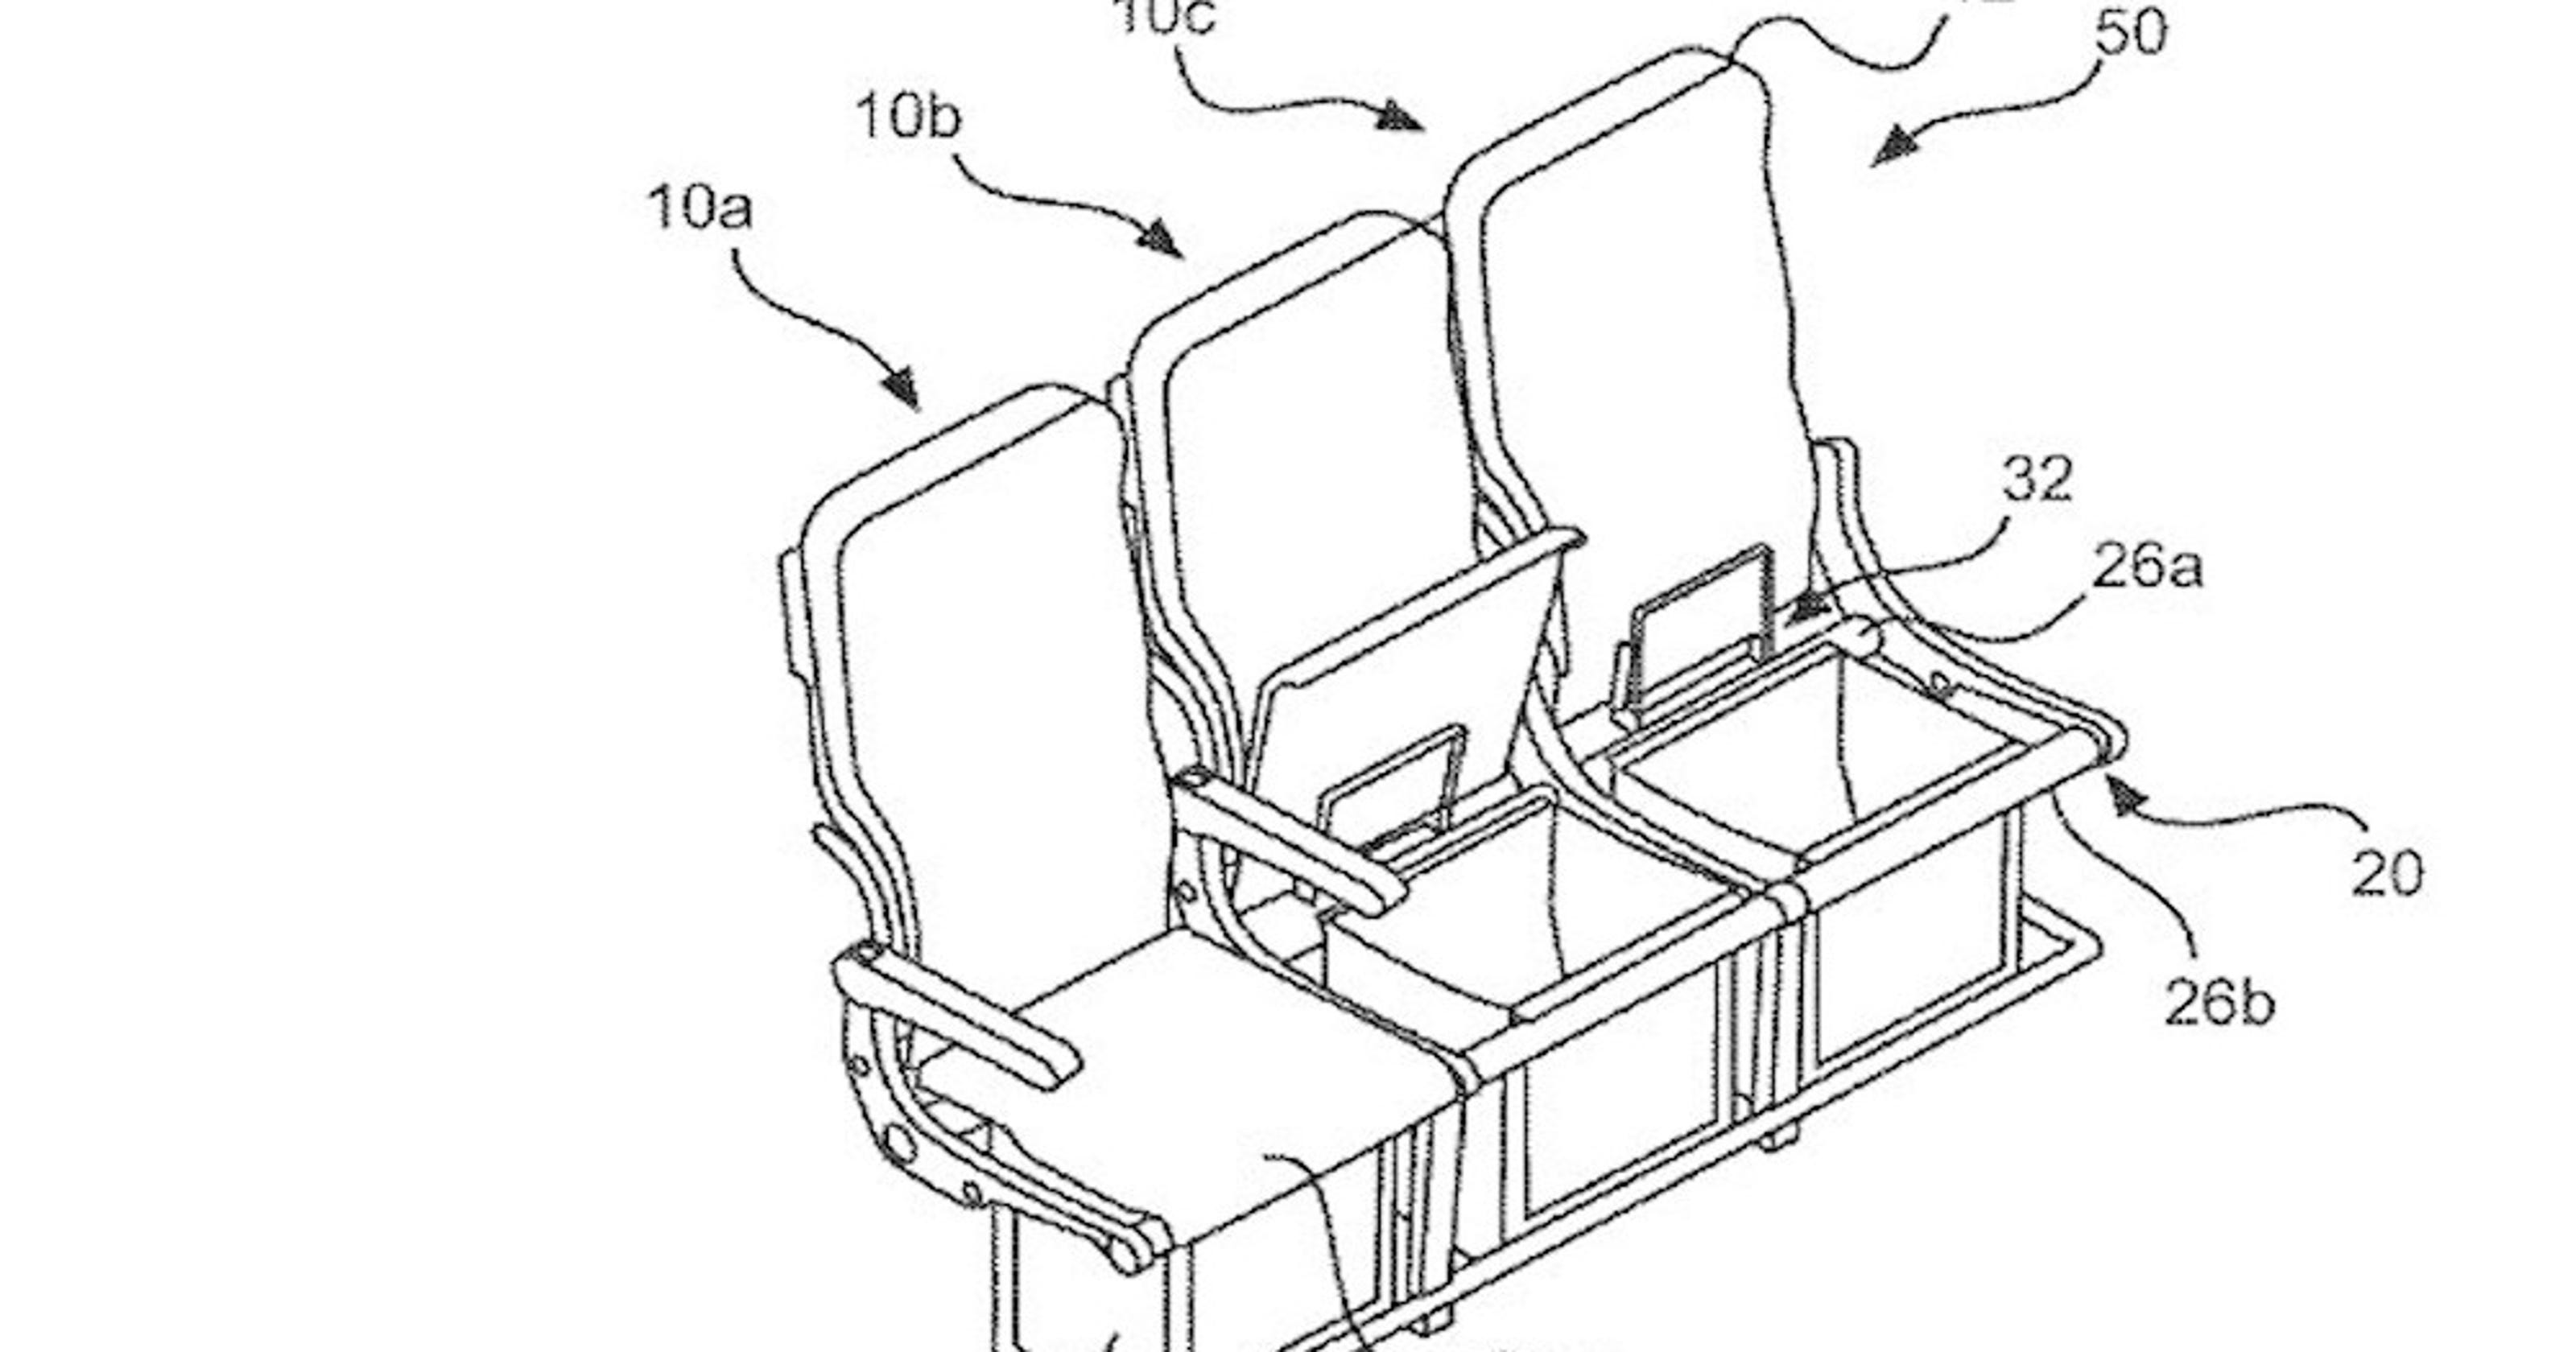 Airbus files patent to put more storage under seats (but